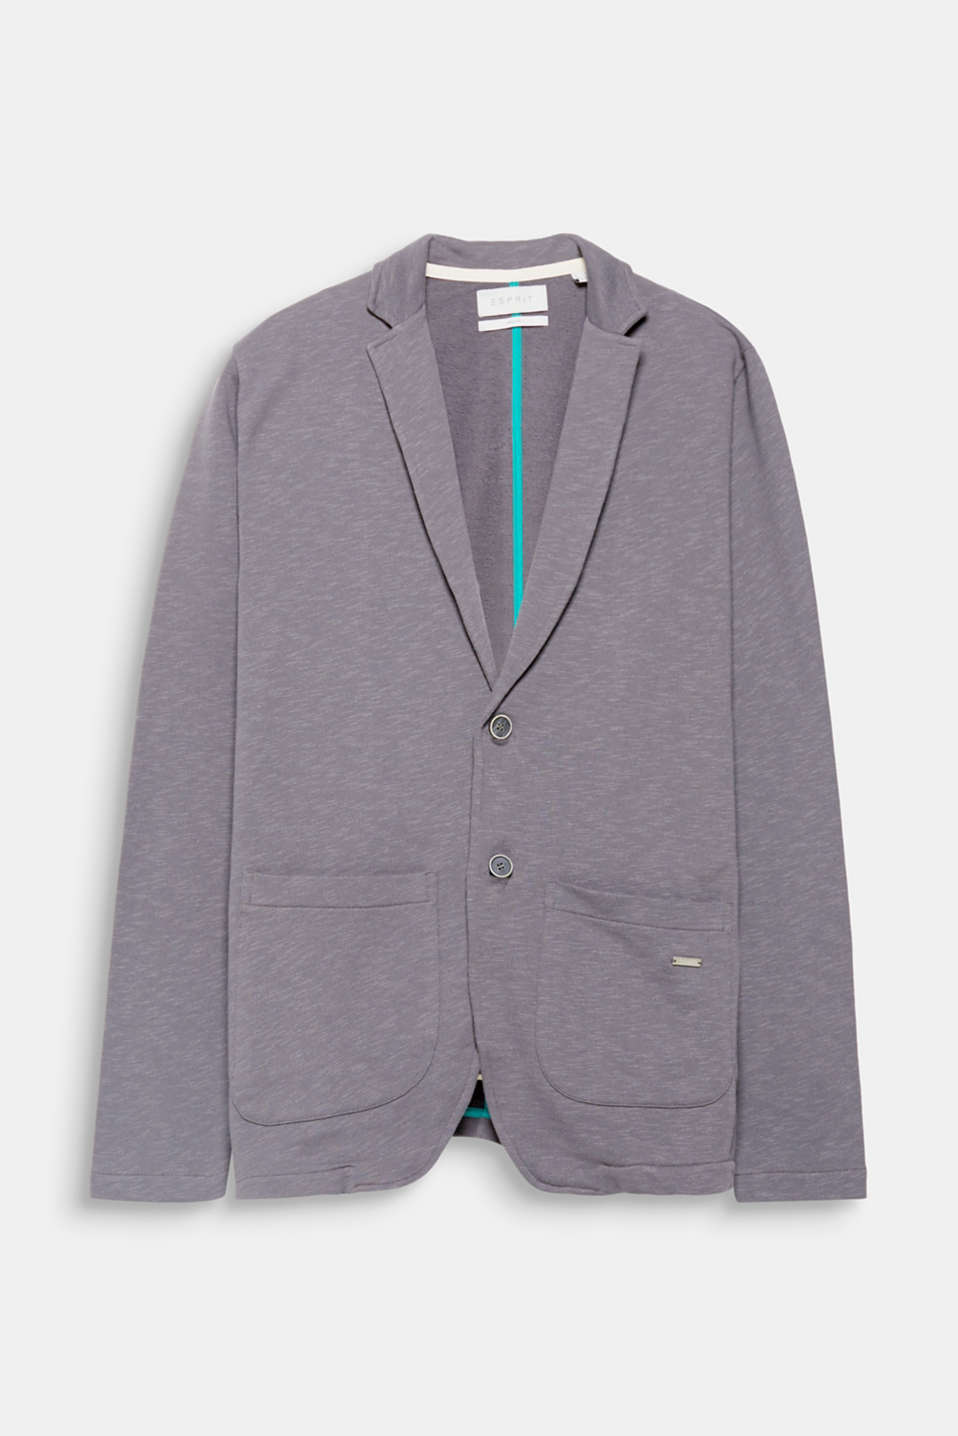 Wonderfully casual! This blazer combines the classic style of a blazer with sporty jersey fabric.